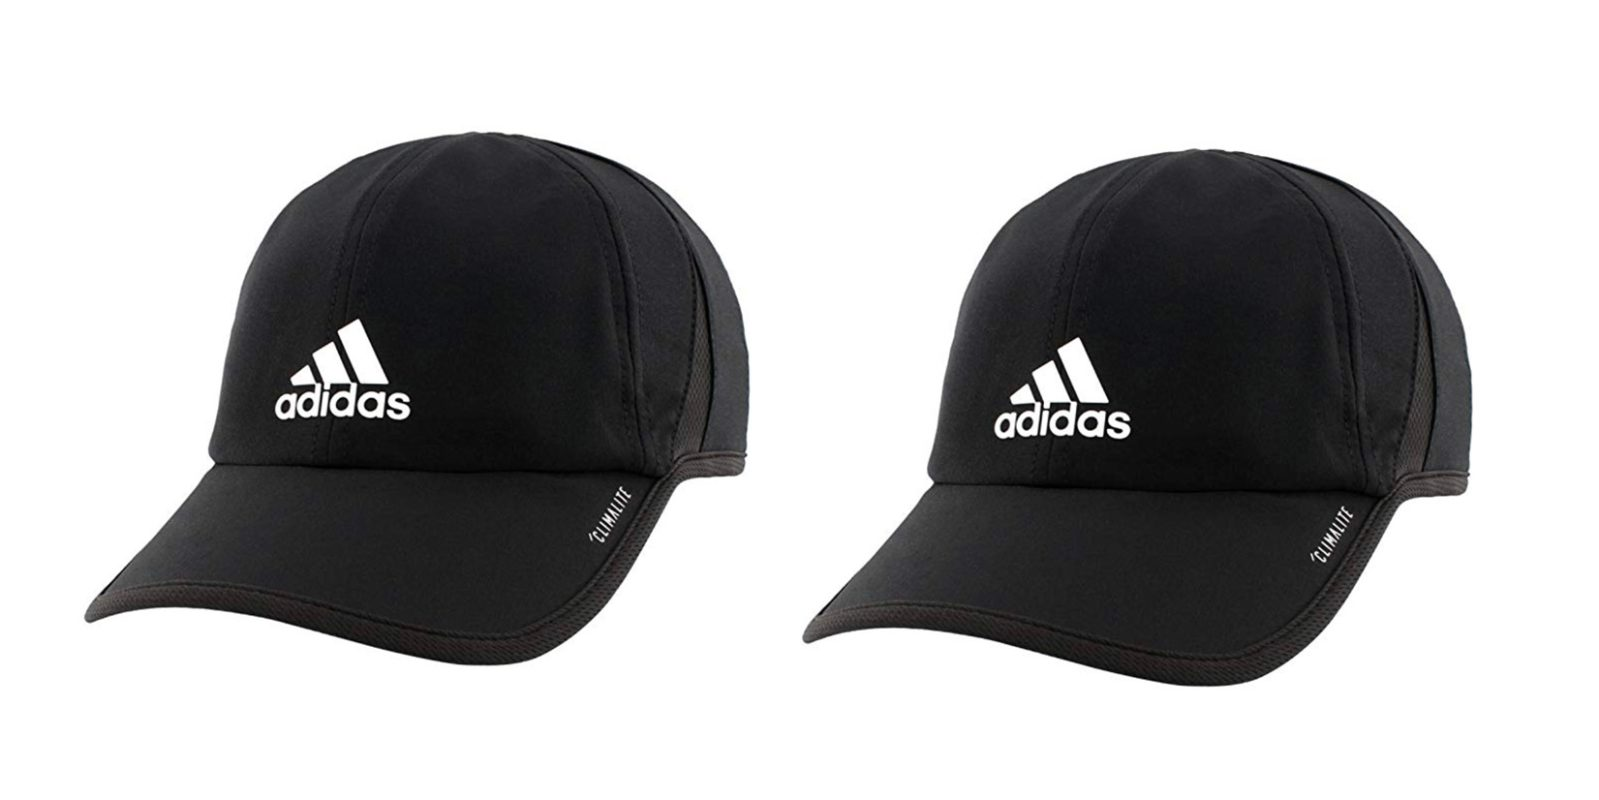 7496a7bda15e2 Protect your face from the sun w/ adidas' Superlite Hat for $12 ...